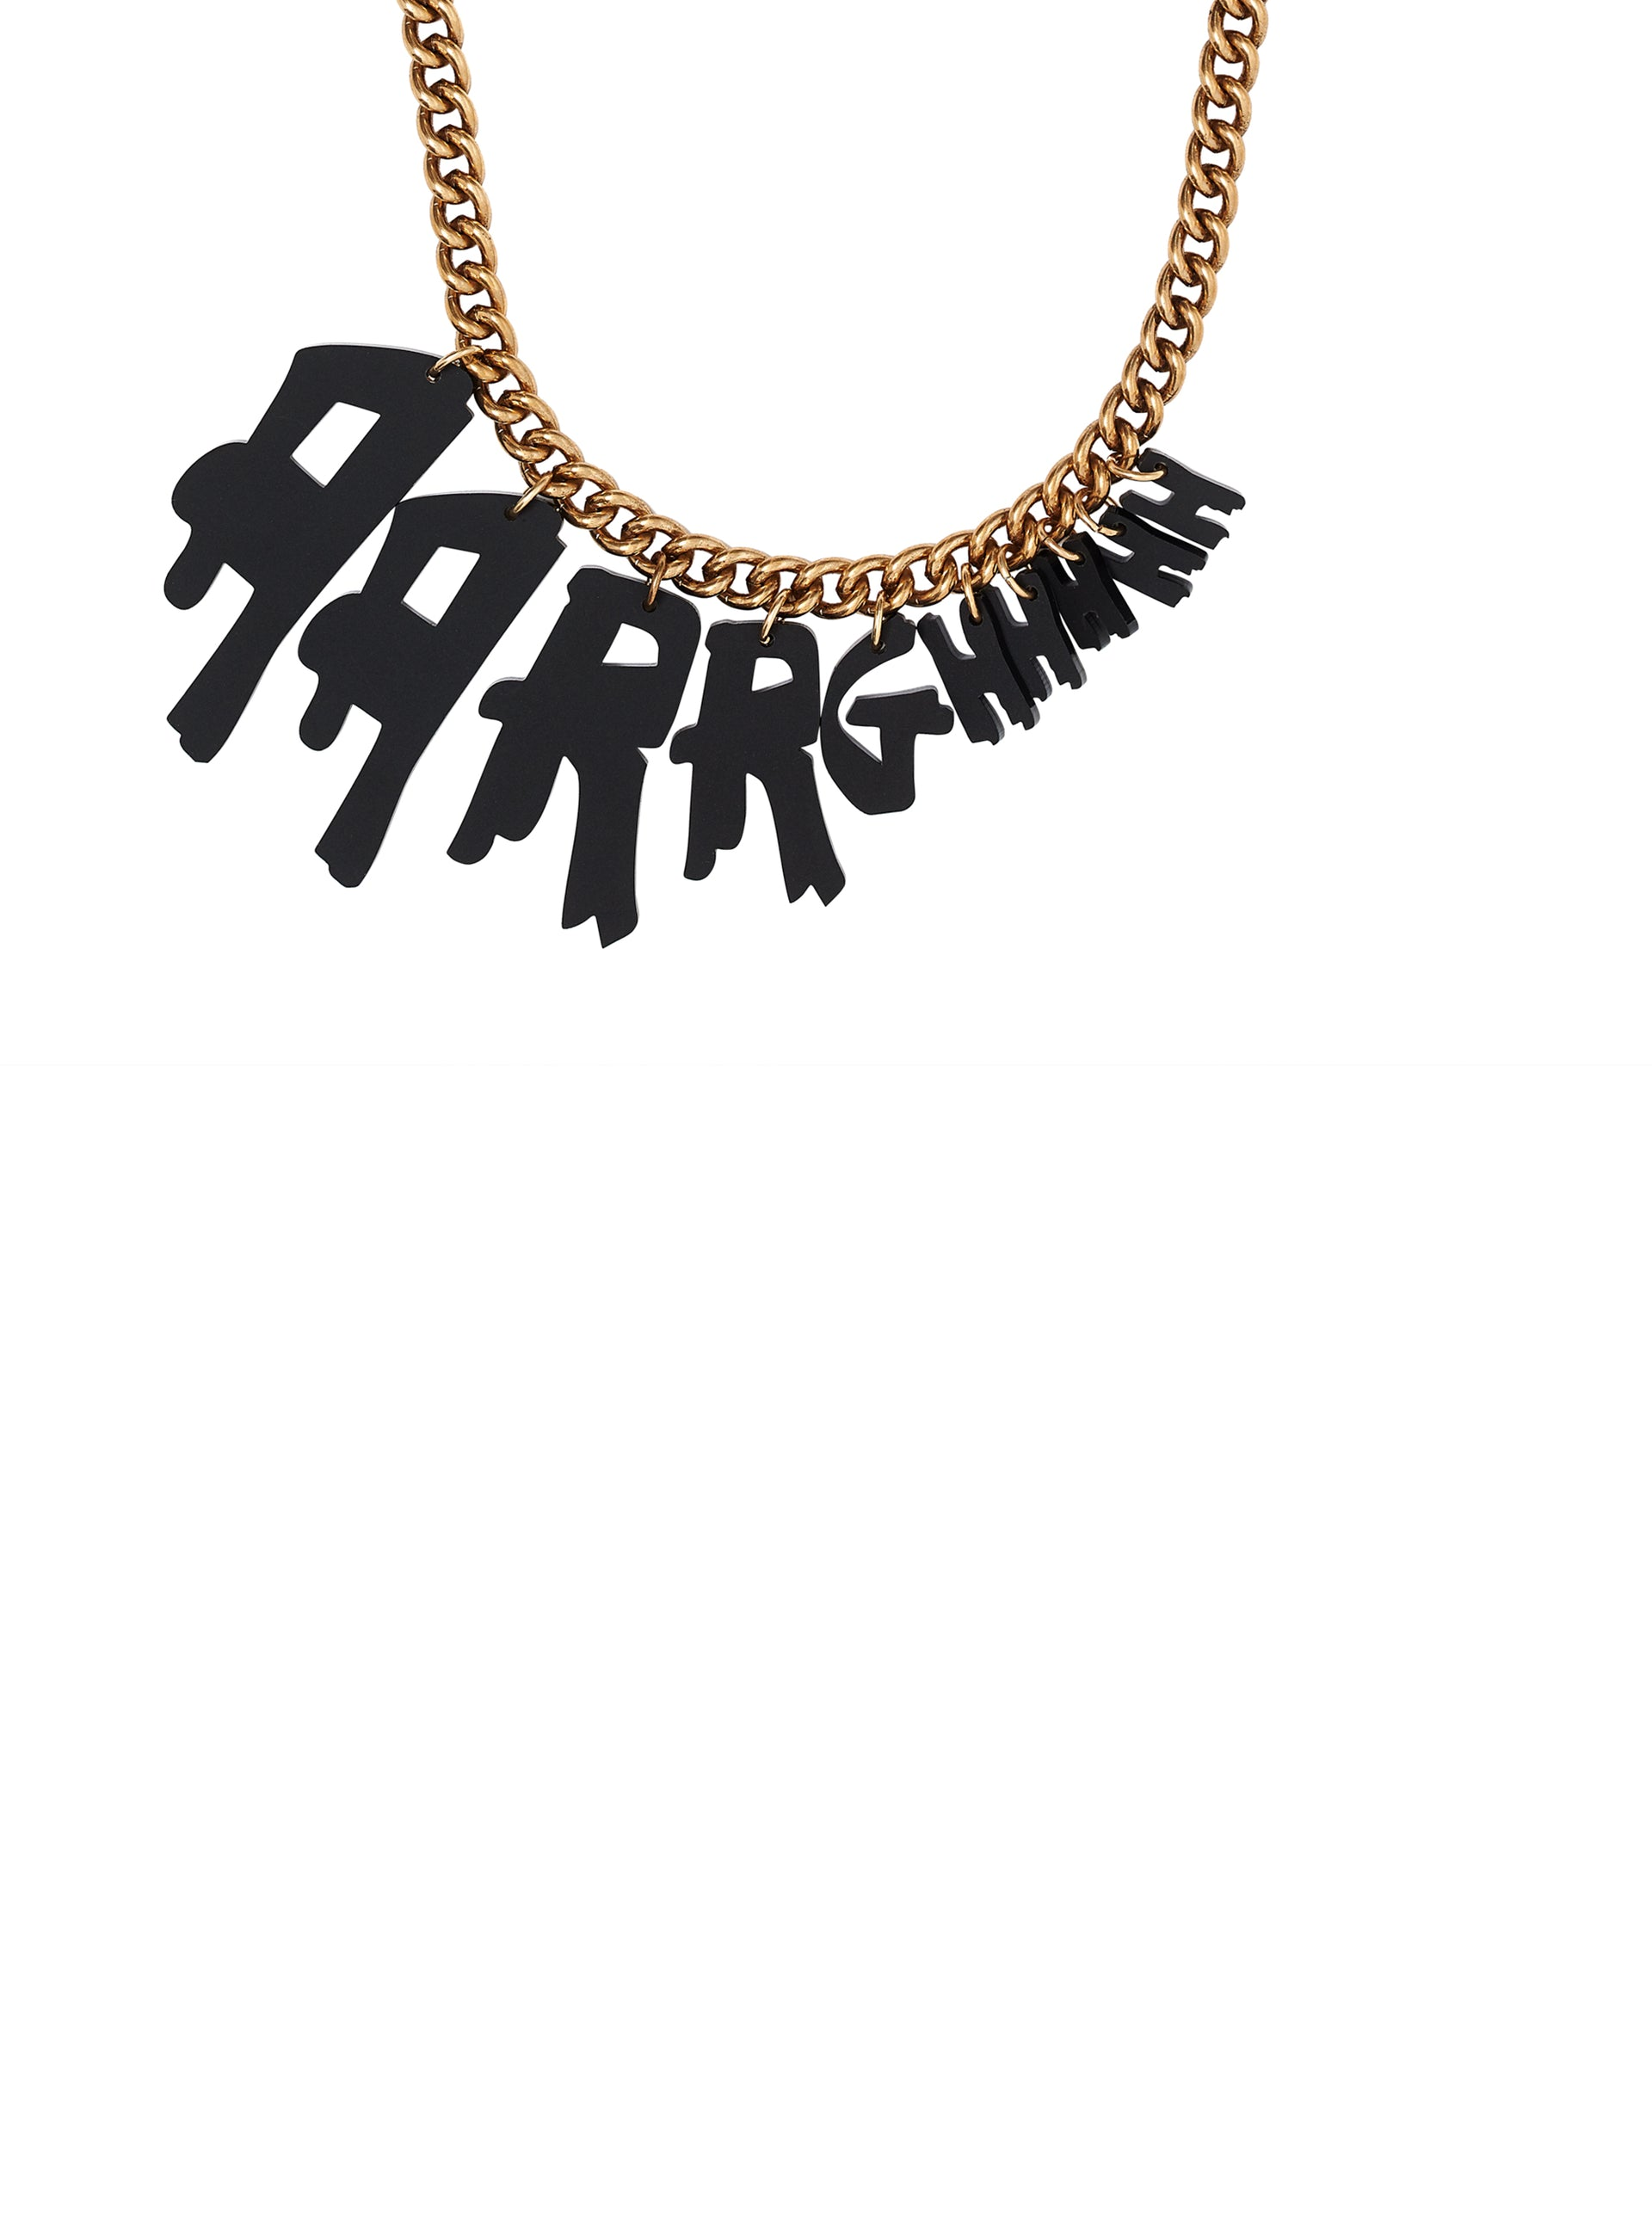 Aarrghhhh Necklace - Matt Black